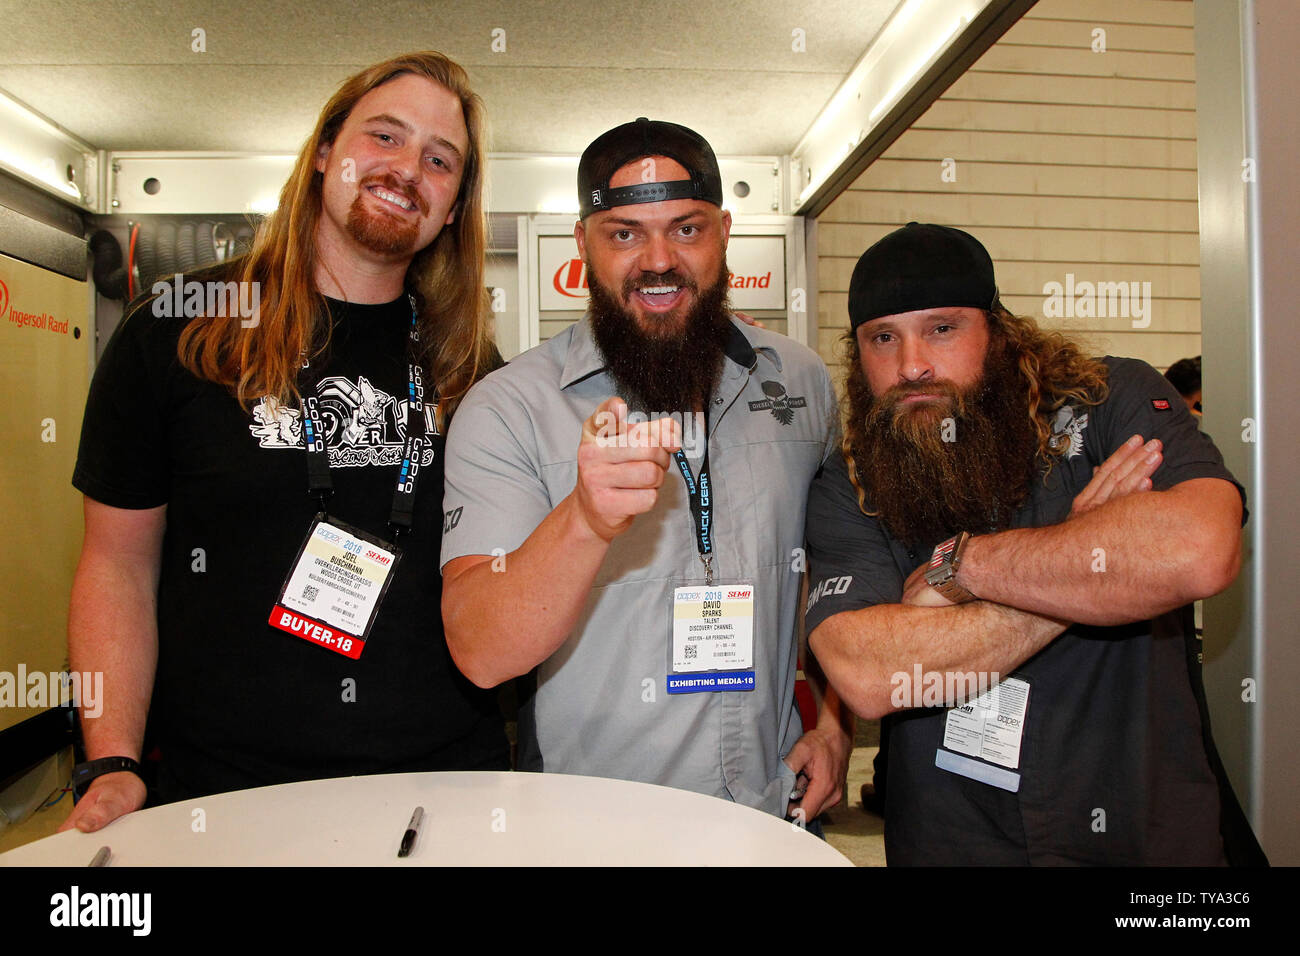 joel buschmann with reality tv stars dave heavy d sparks and diesel dave kiley of diesel https www alamy com joel buschmann with reality tv stars dave heavy d sparks and diesel dave kiley of diesel brothers take a break from signing autographs to pose for a photo during the 2018 sema show at the las vegas convention center in las vegas nevada october 30 2018 photo by james atoaupi image257763078 html